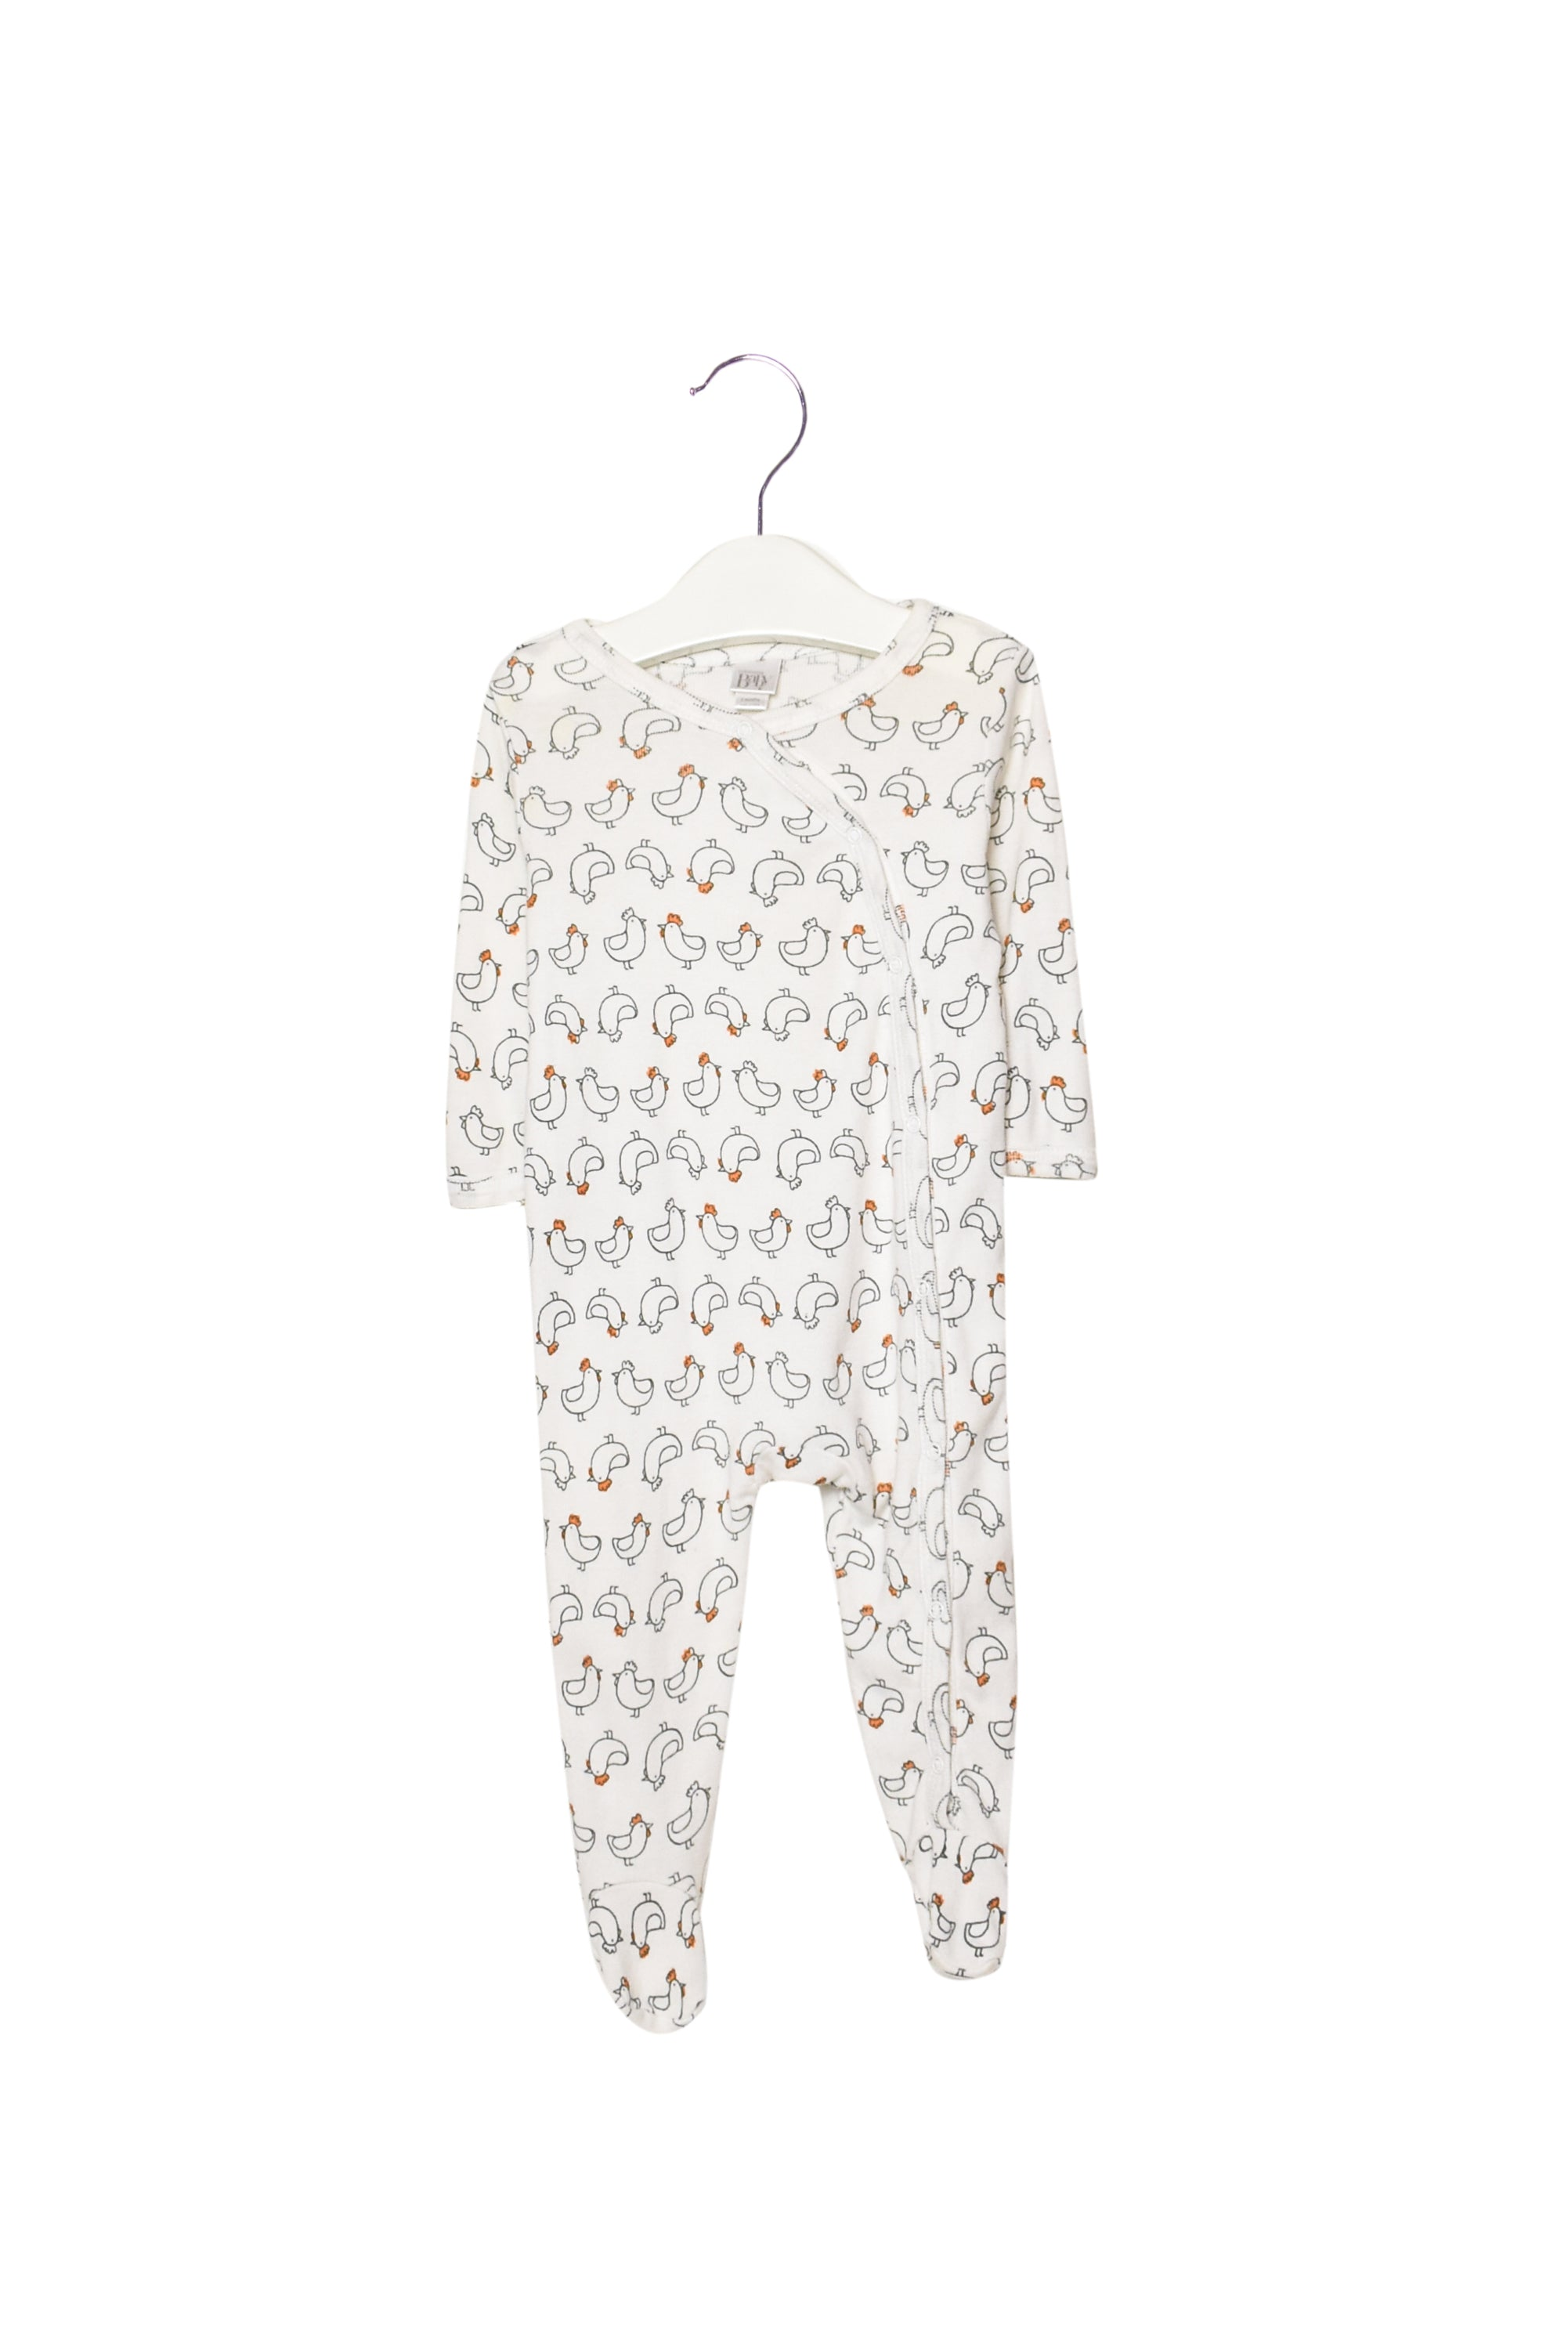 10012119 Nordstrom Baby ~ Jumpsuit 3M at Retykle